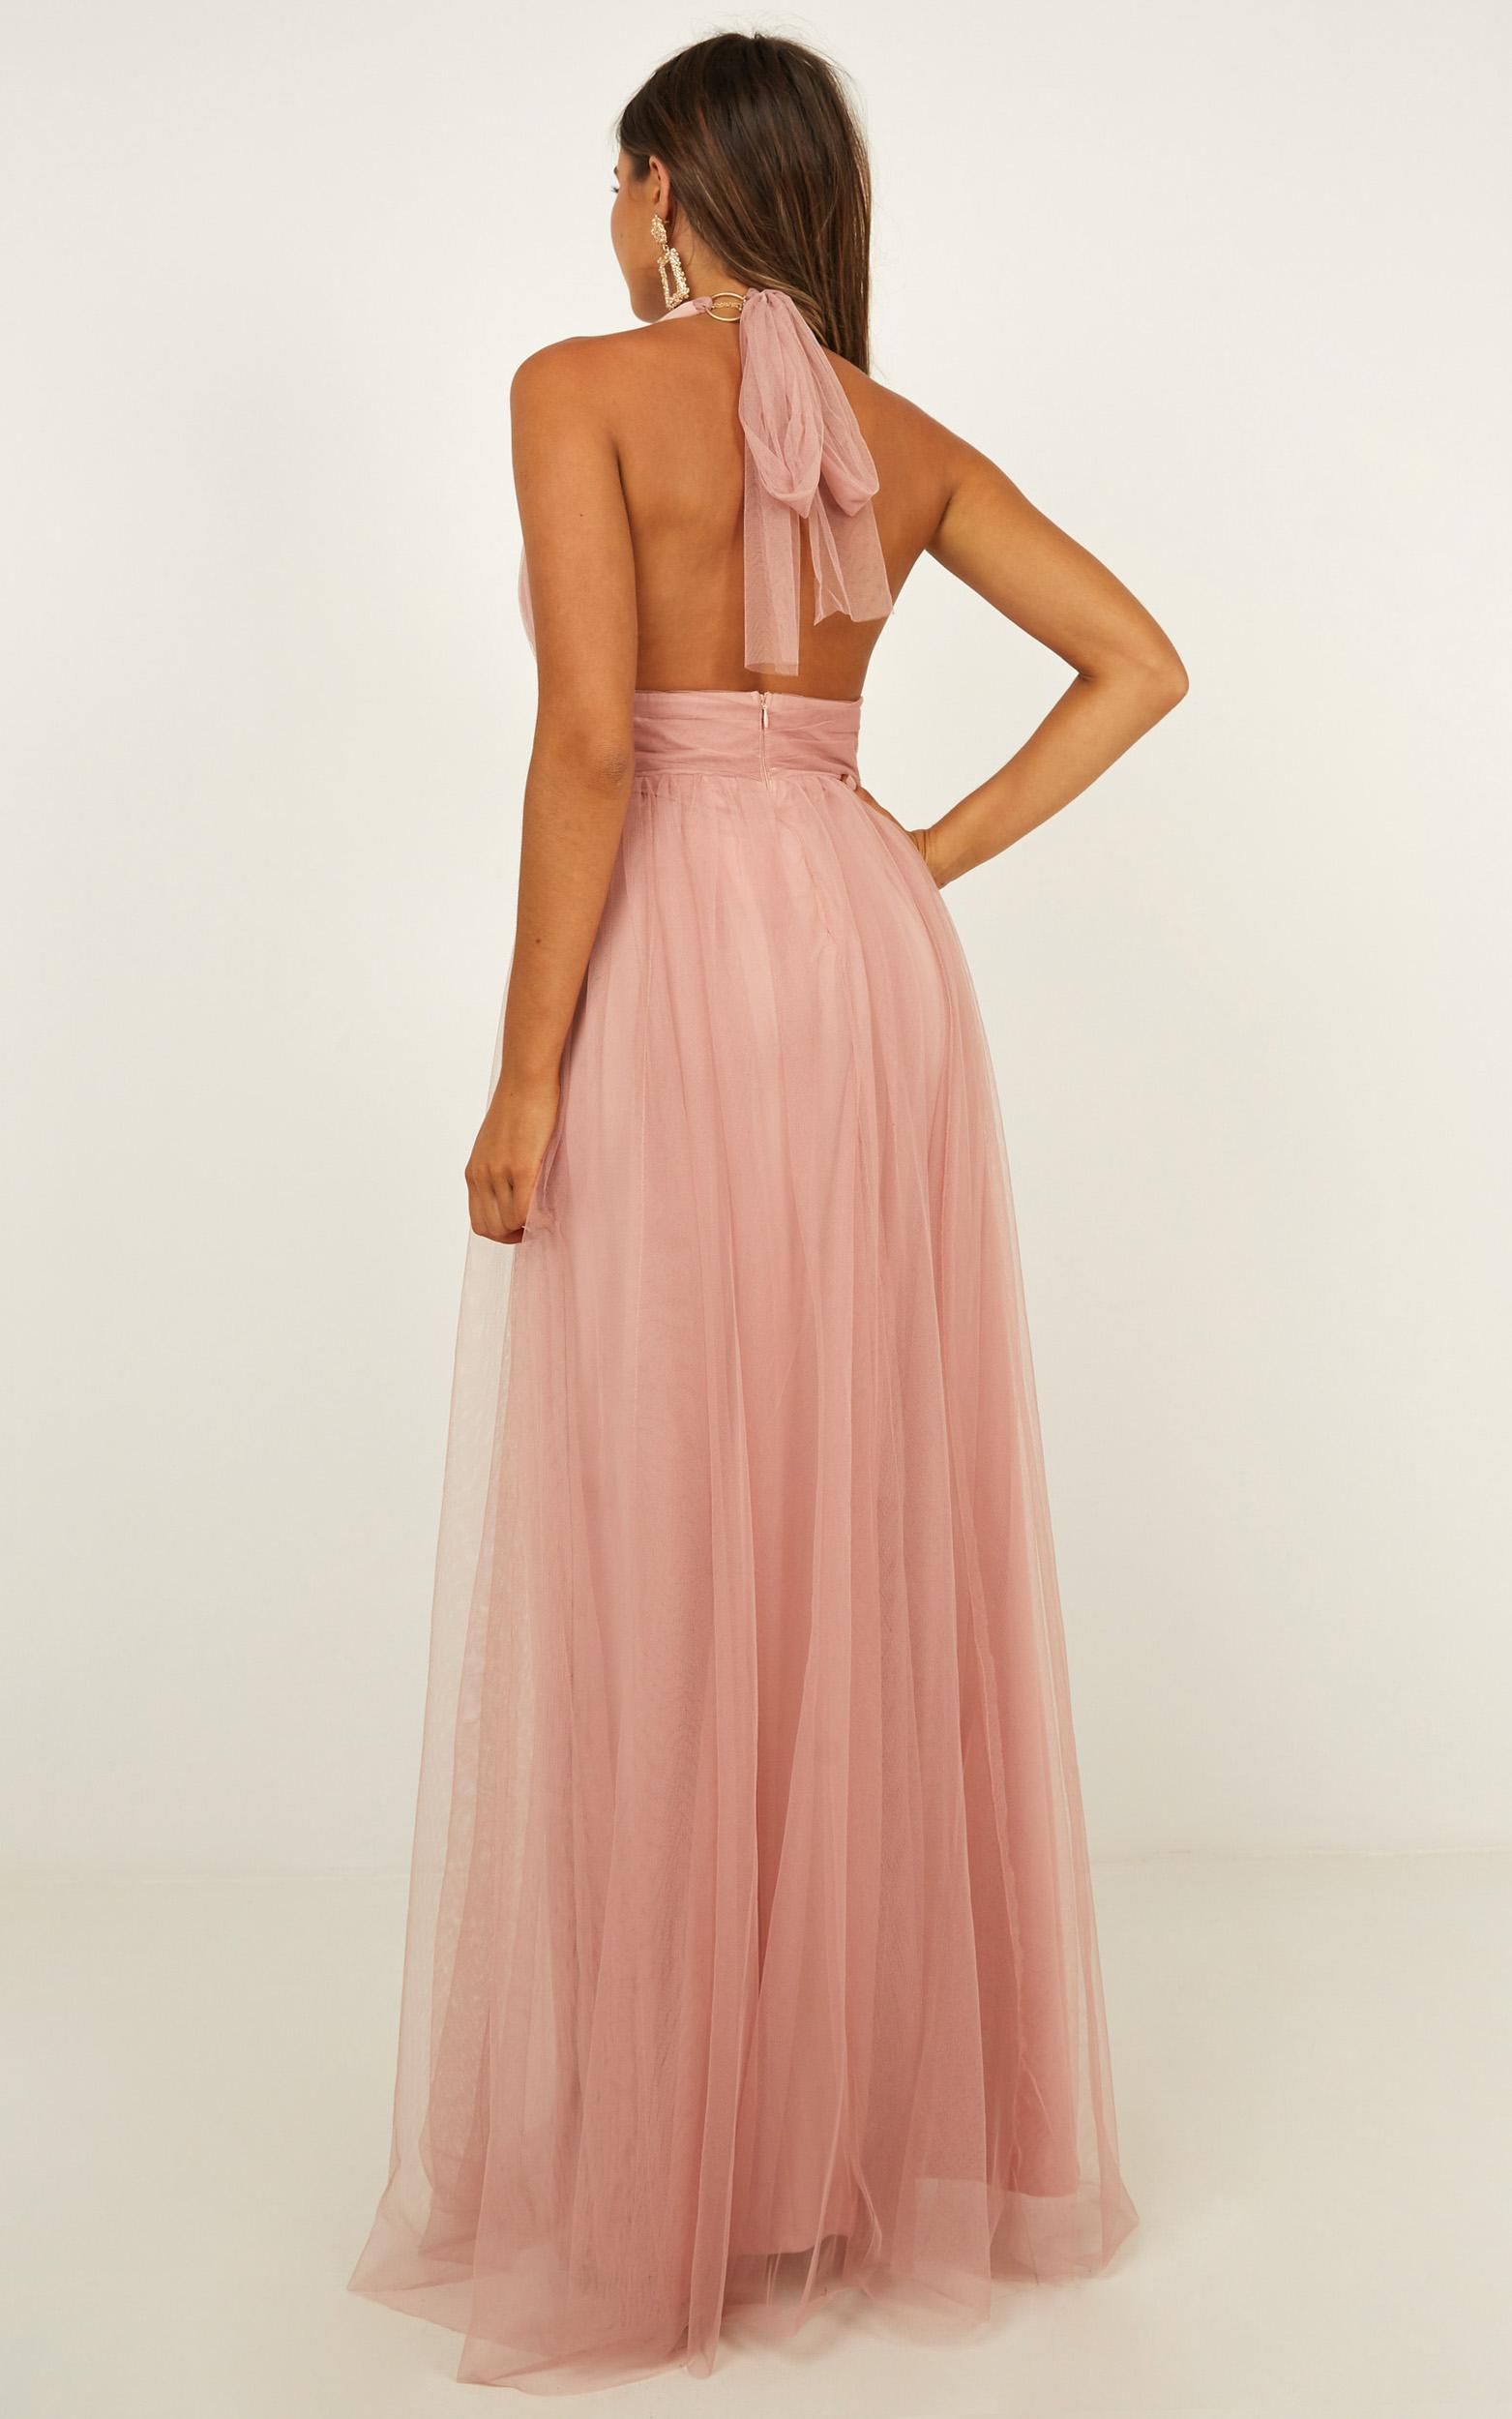 Honeymoon Avenue maxi dress in blush - 8 (S), Blush, hi-res image number null